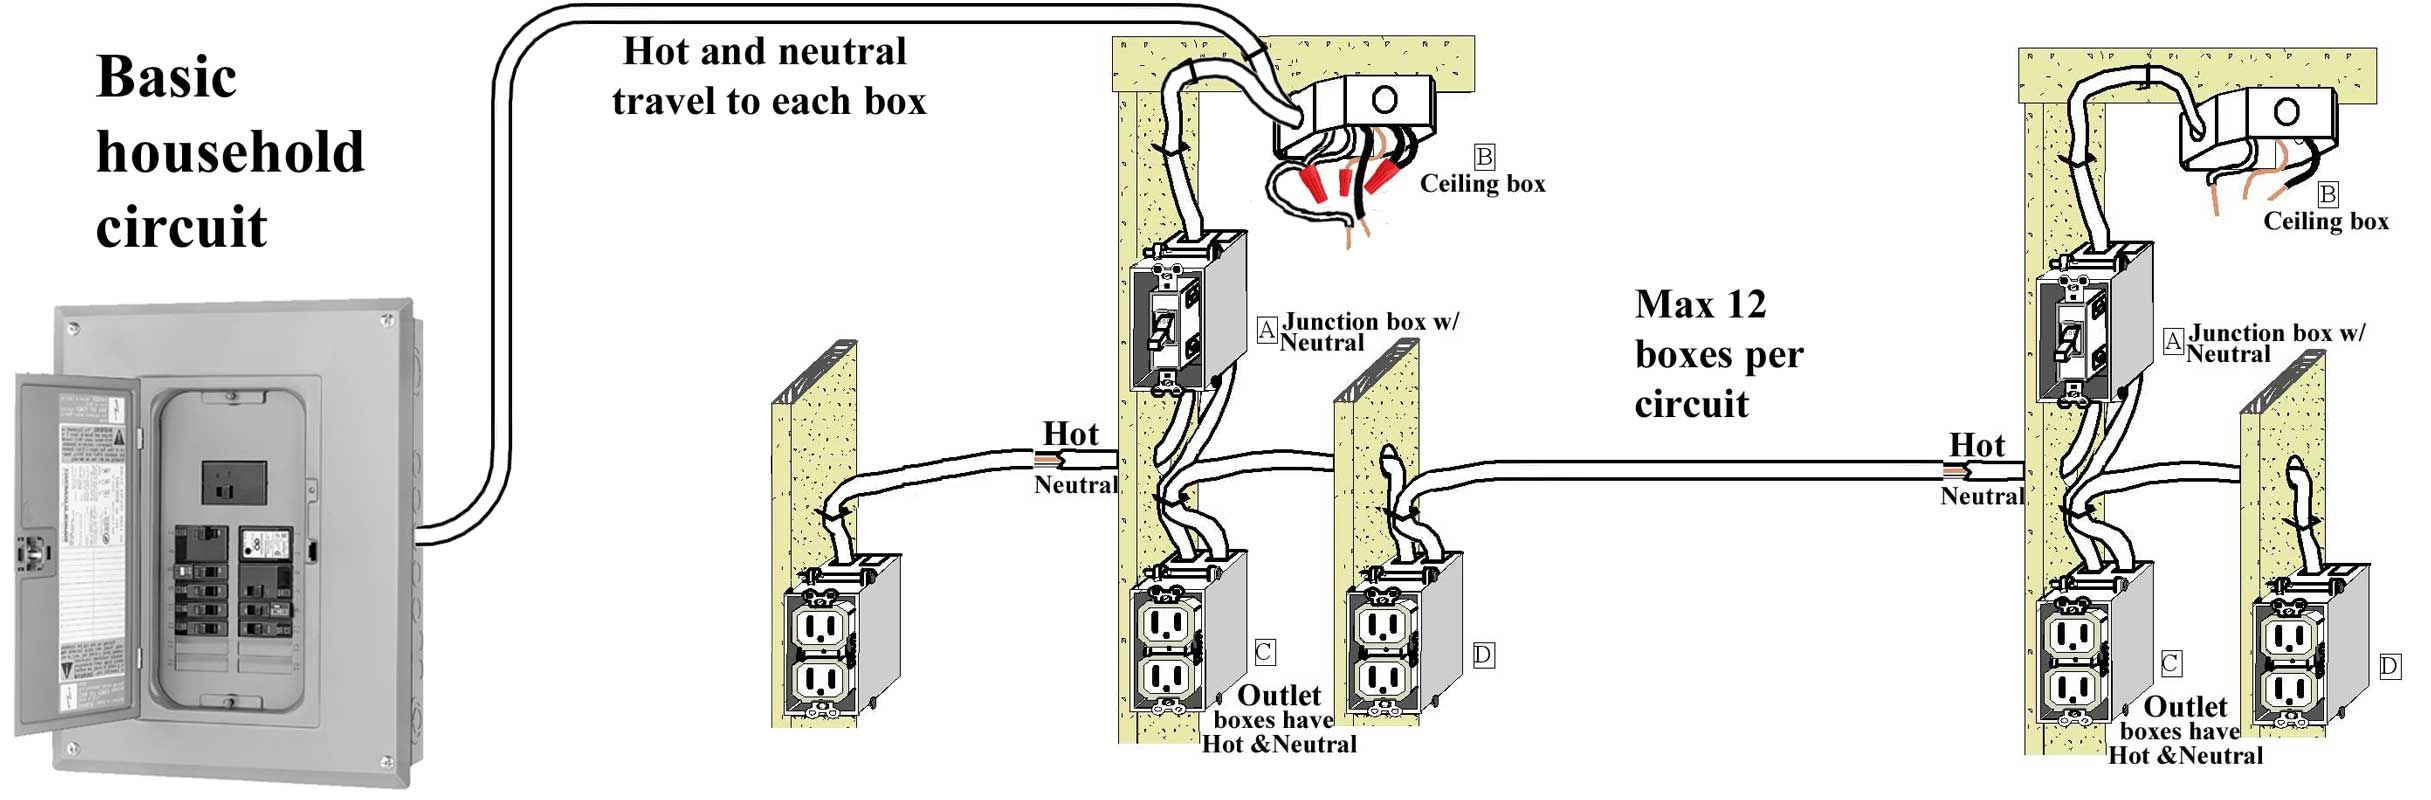 Elec Wiring Basics - Wiring Diagrams Hubs - House Wiring Diagram Pdf